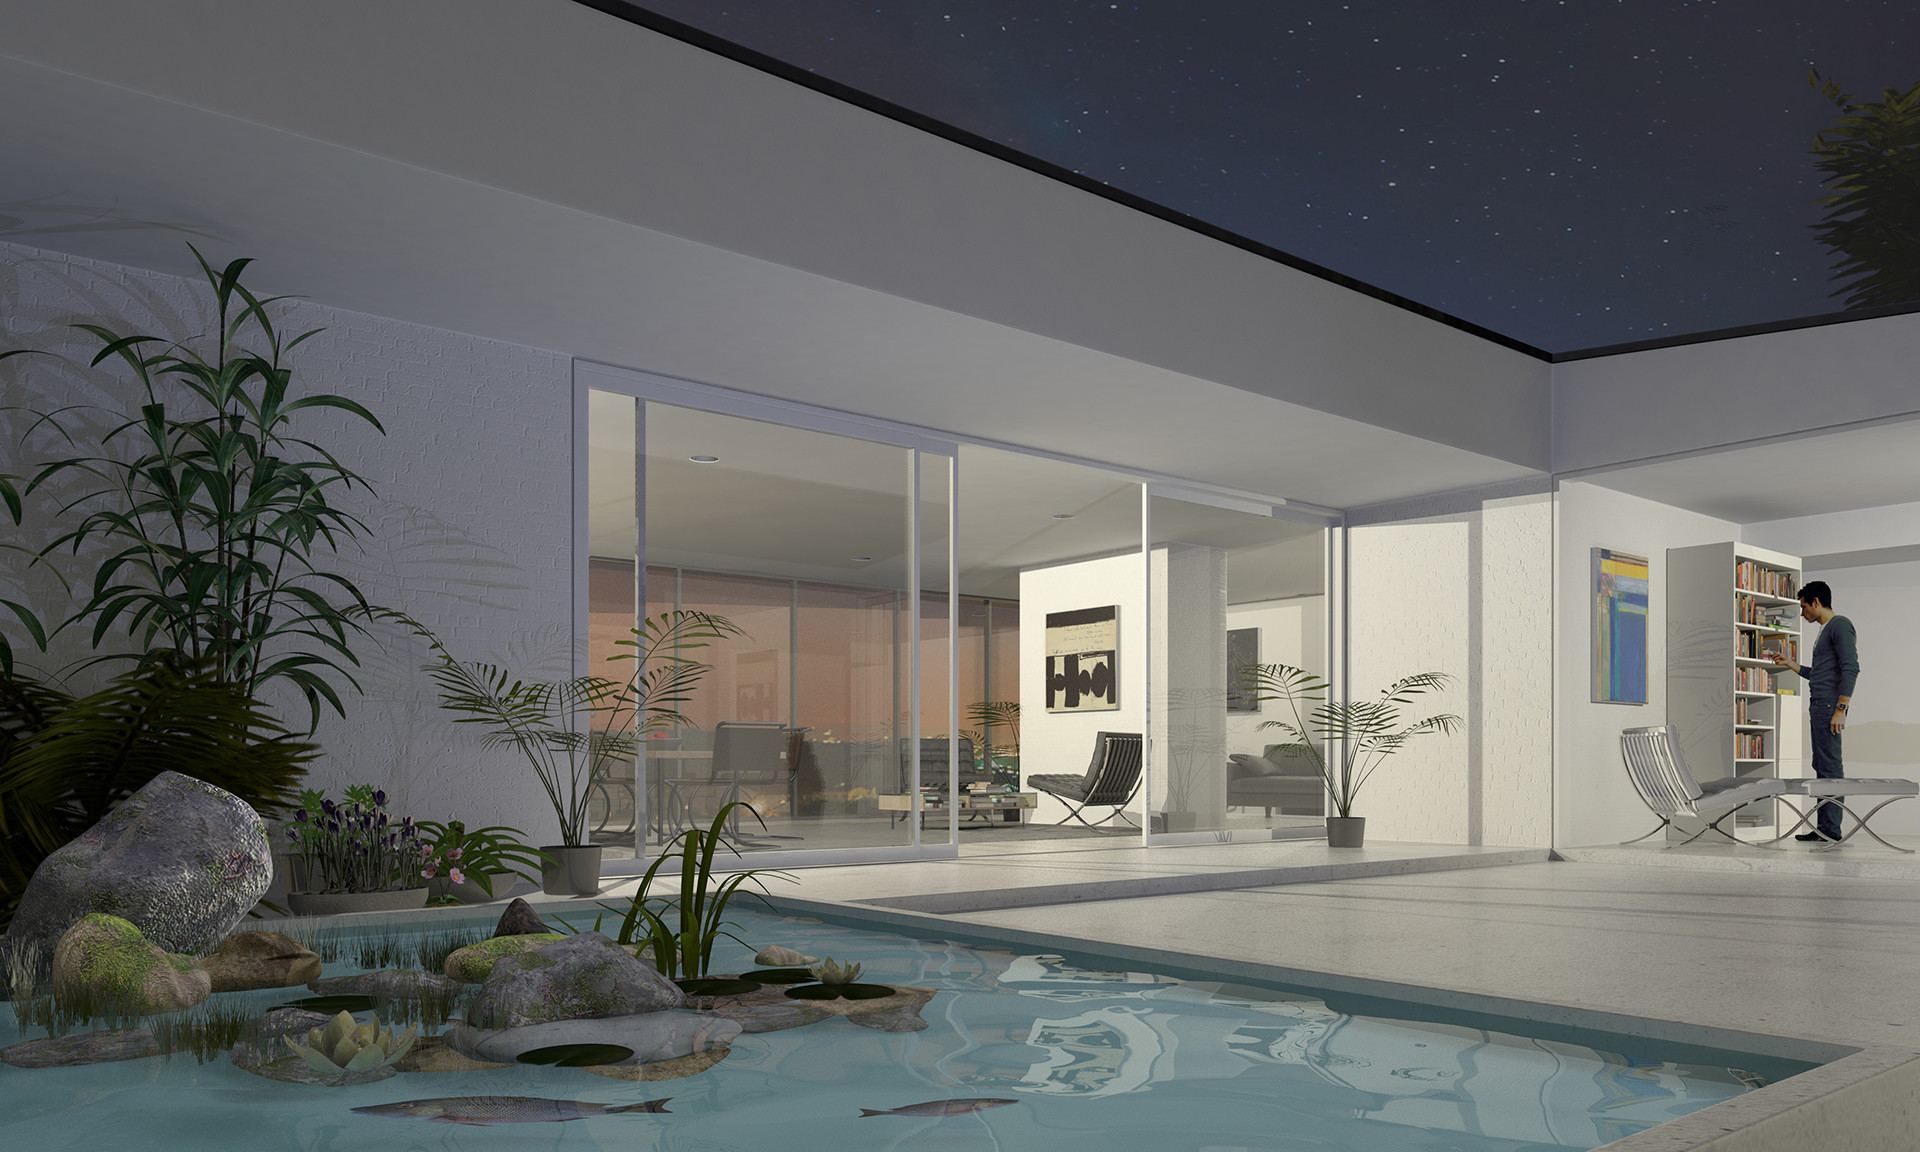 Architectural Visualization of a house designed by Dan Clark of MAD in 2017.